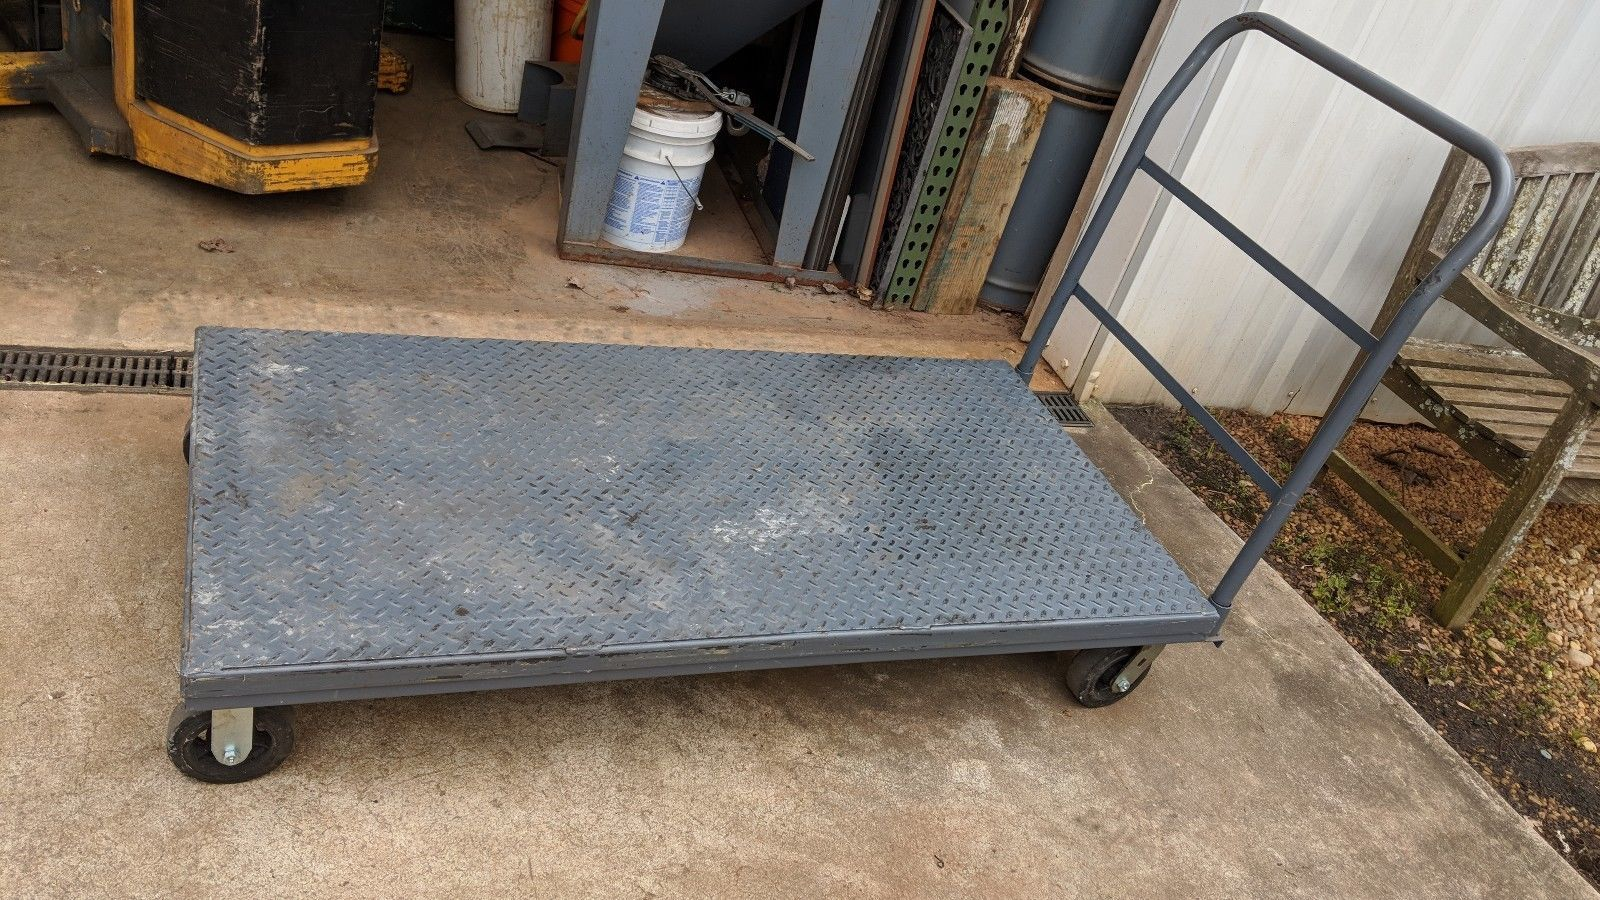 30 x 60 tread plate platform truck cart swivel caster wheeled dolly